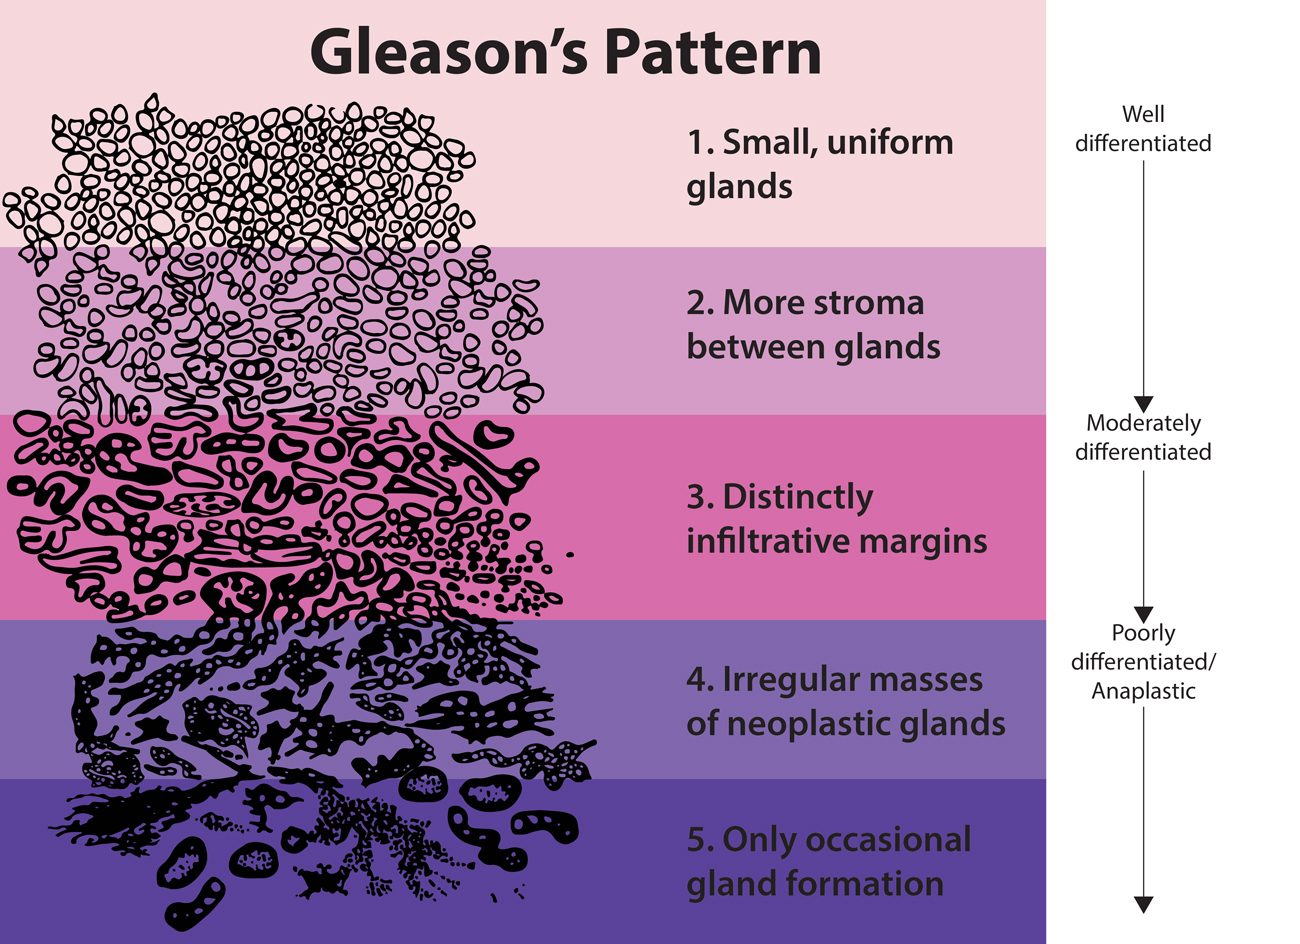 Gleason's Pattern: 1. Small, uniform glands 2. More stroma between glands 3. Distinctly infiltrative margins 4. Irregular masses of neoplastic glands 5. Only occastional gland formation